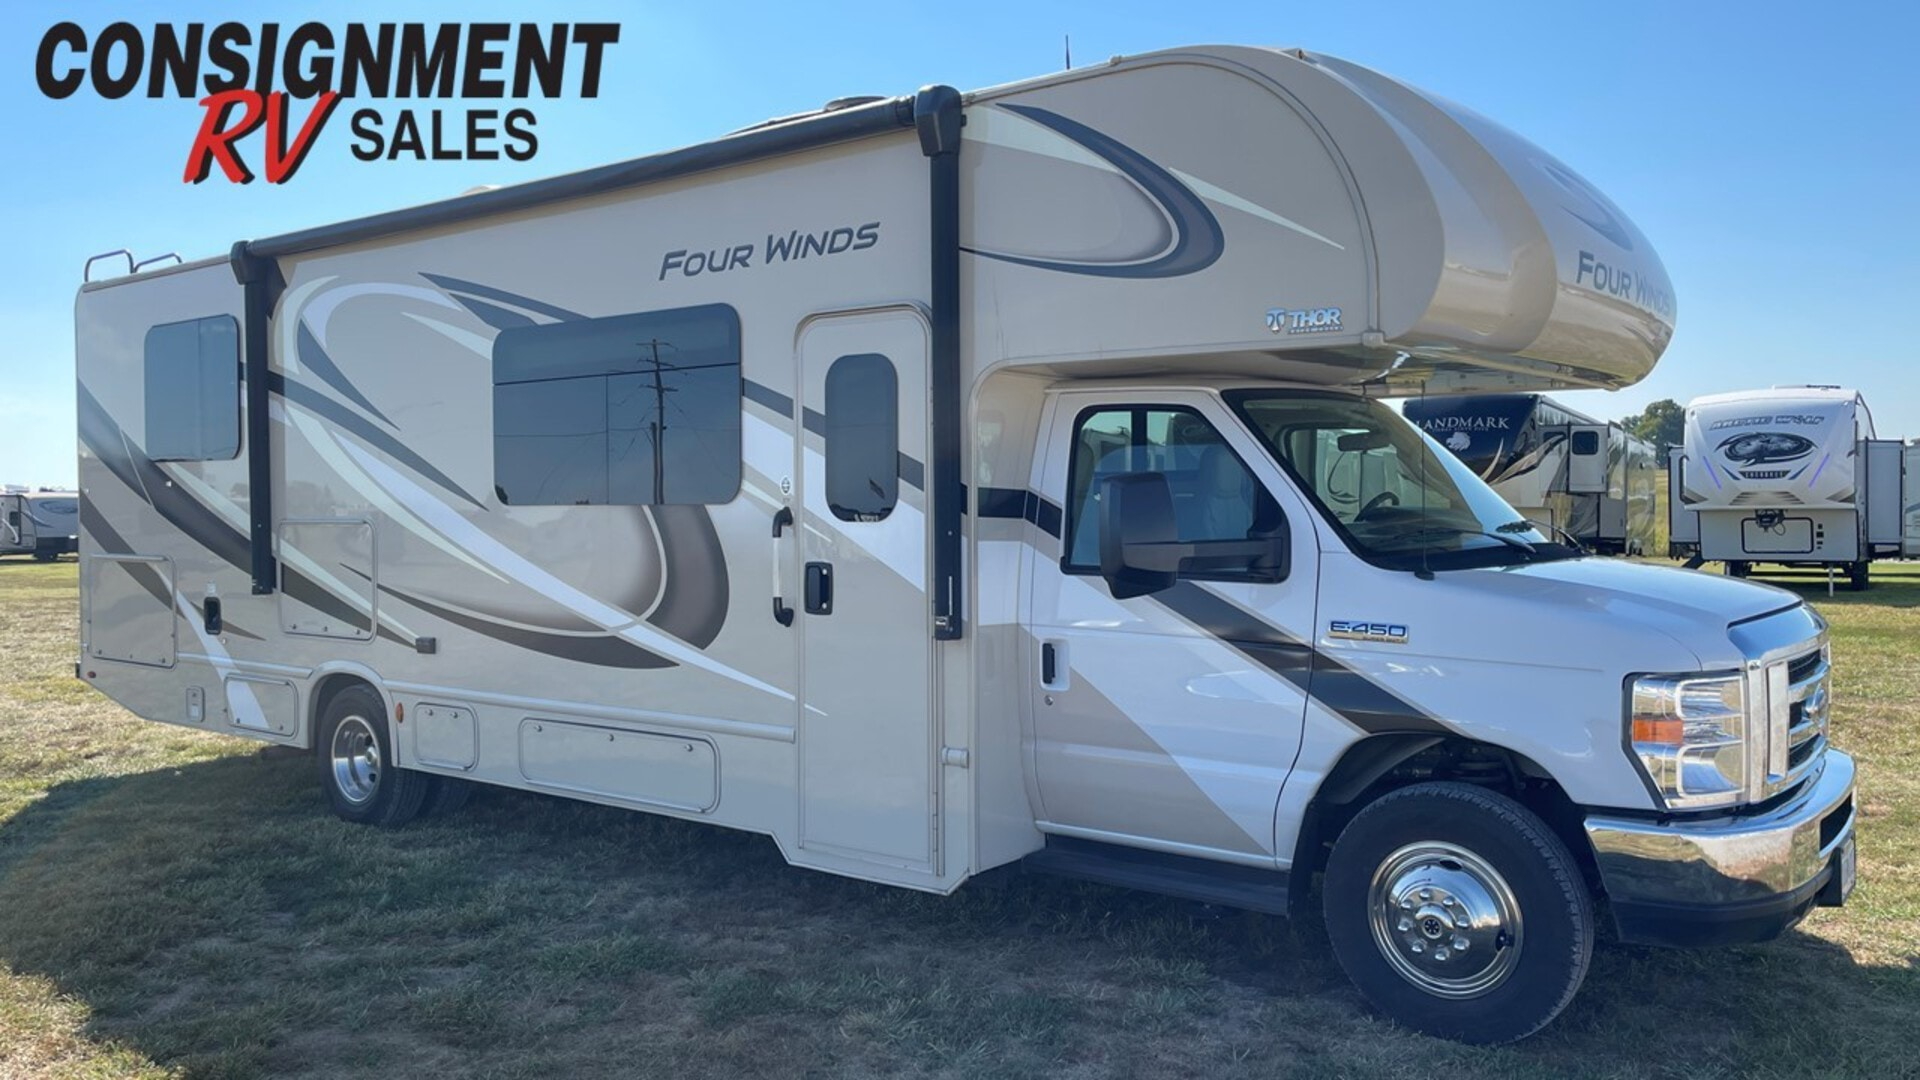 Used, 2019, Thor Motor Coach, Four Winds 31Y, RV - Class C